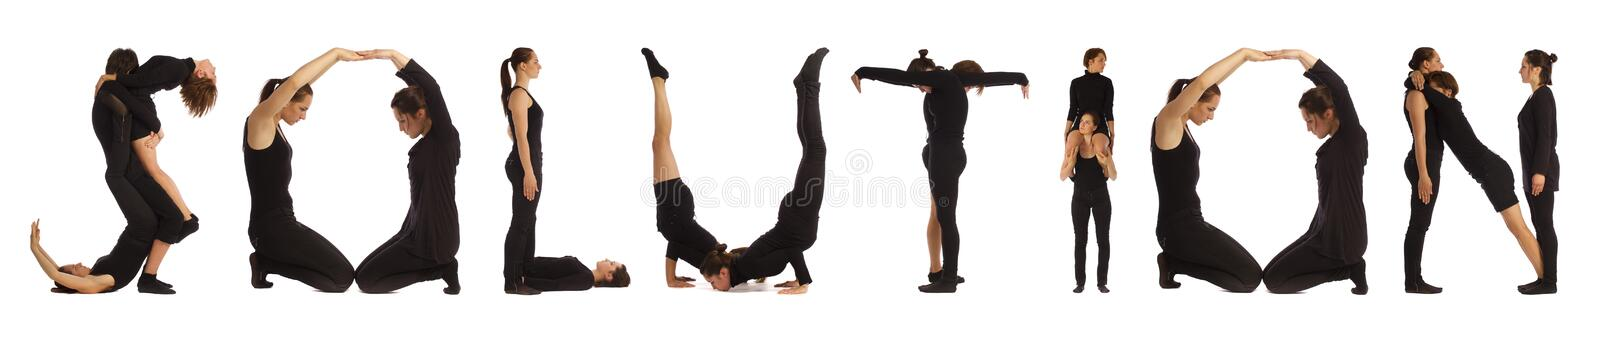 Download Black Dressed People Forming SOLUTION Word Stock Image - Image: 96695873